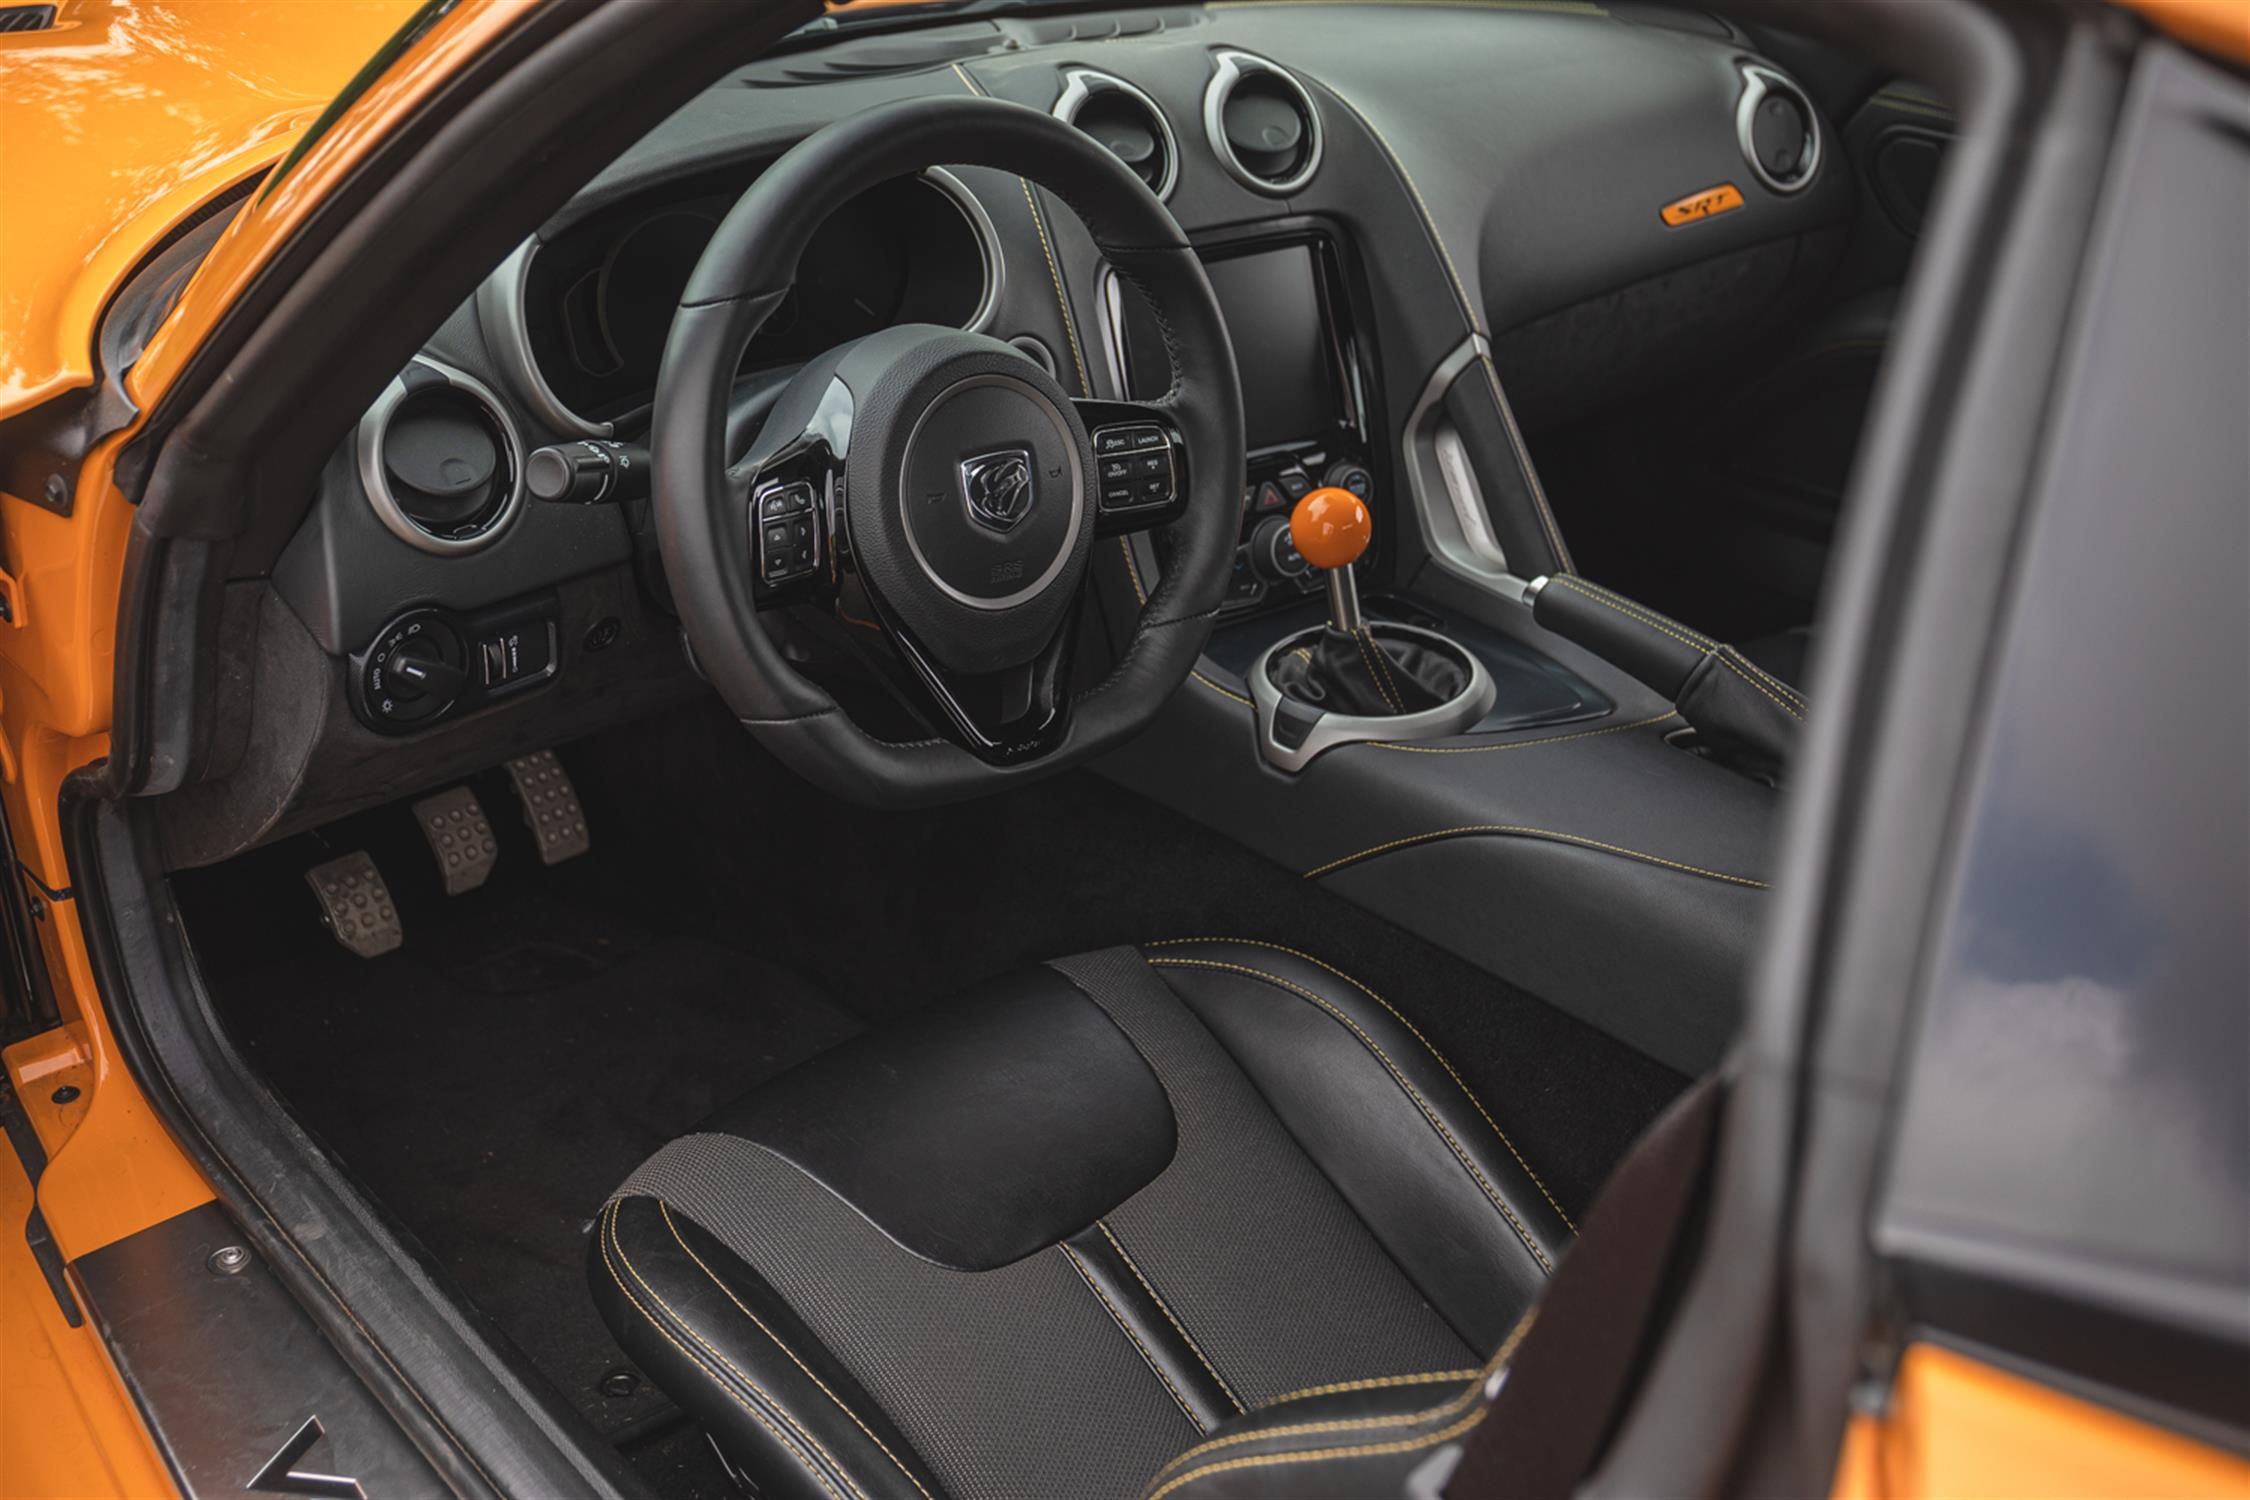 2015 Dodge Viper TA 2.0 6-Speed Coupe - Image 5 of 10